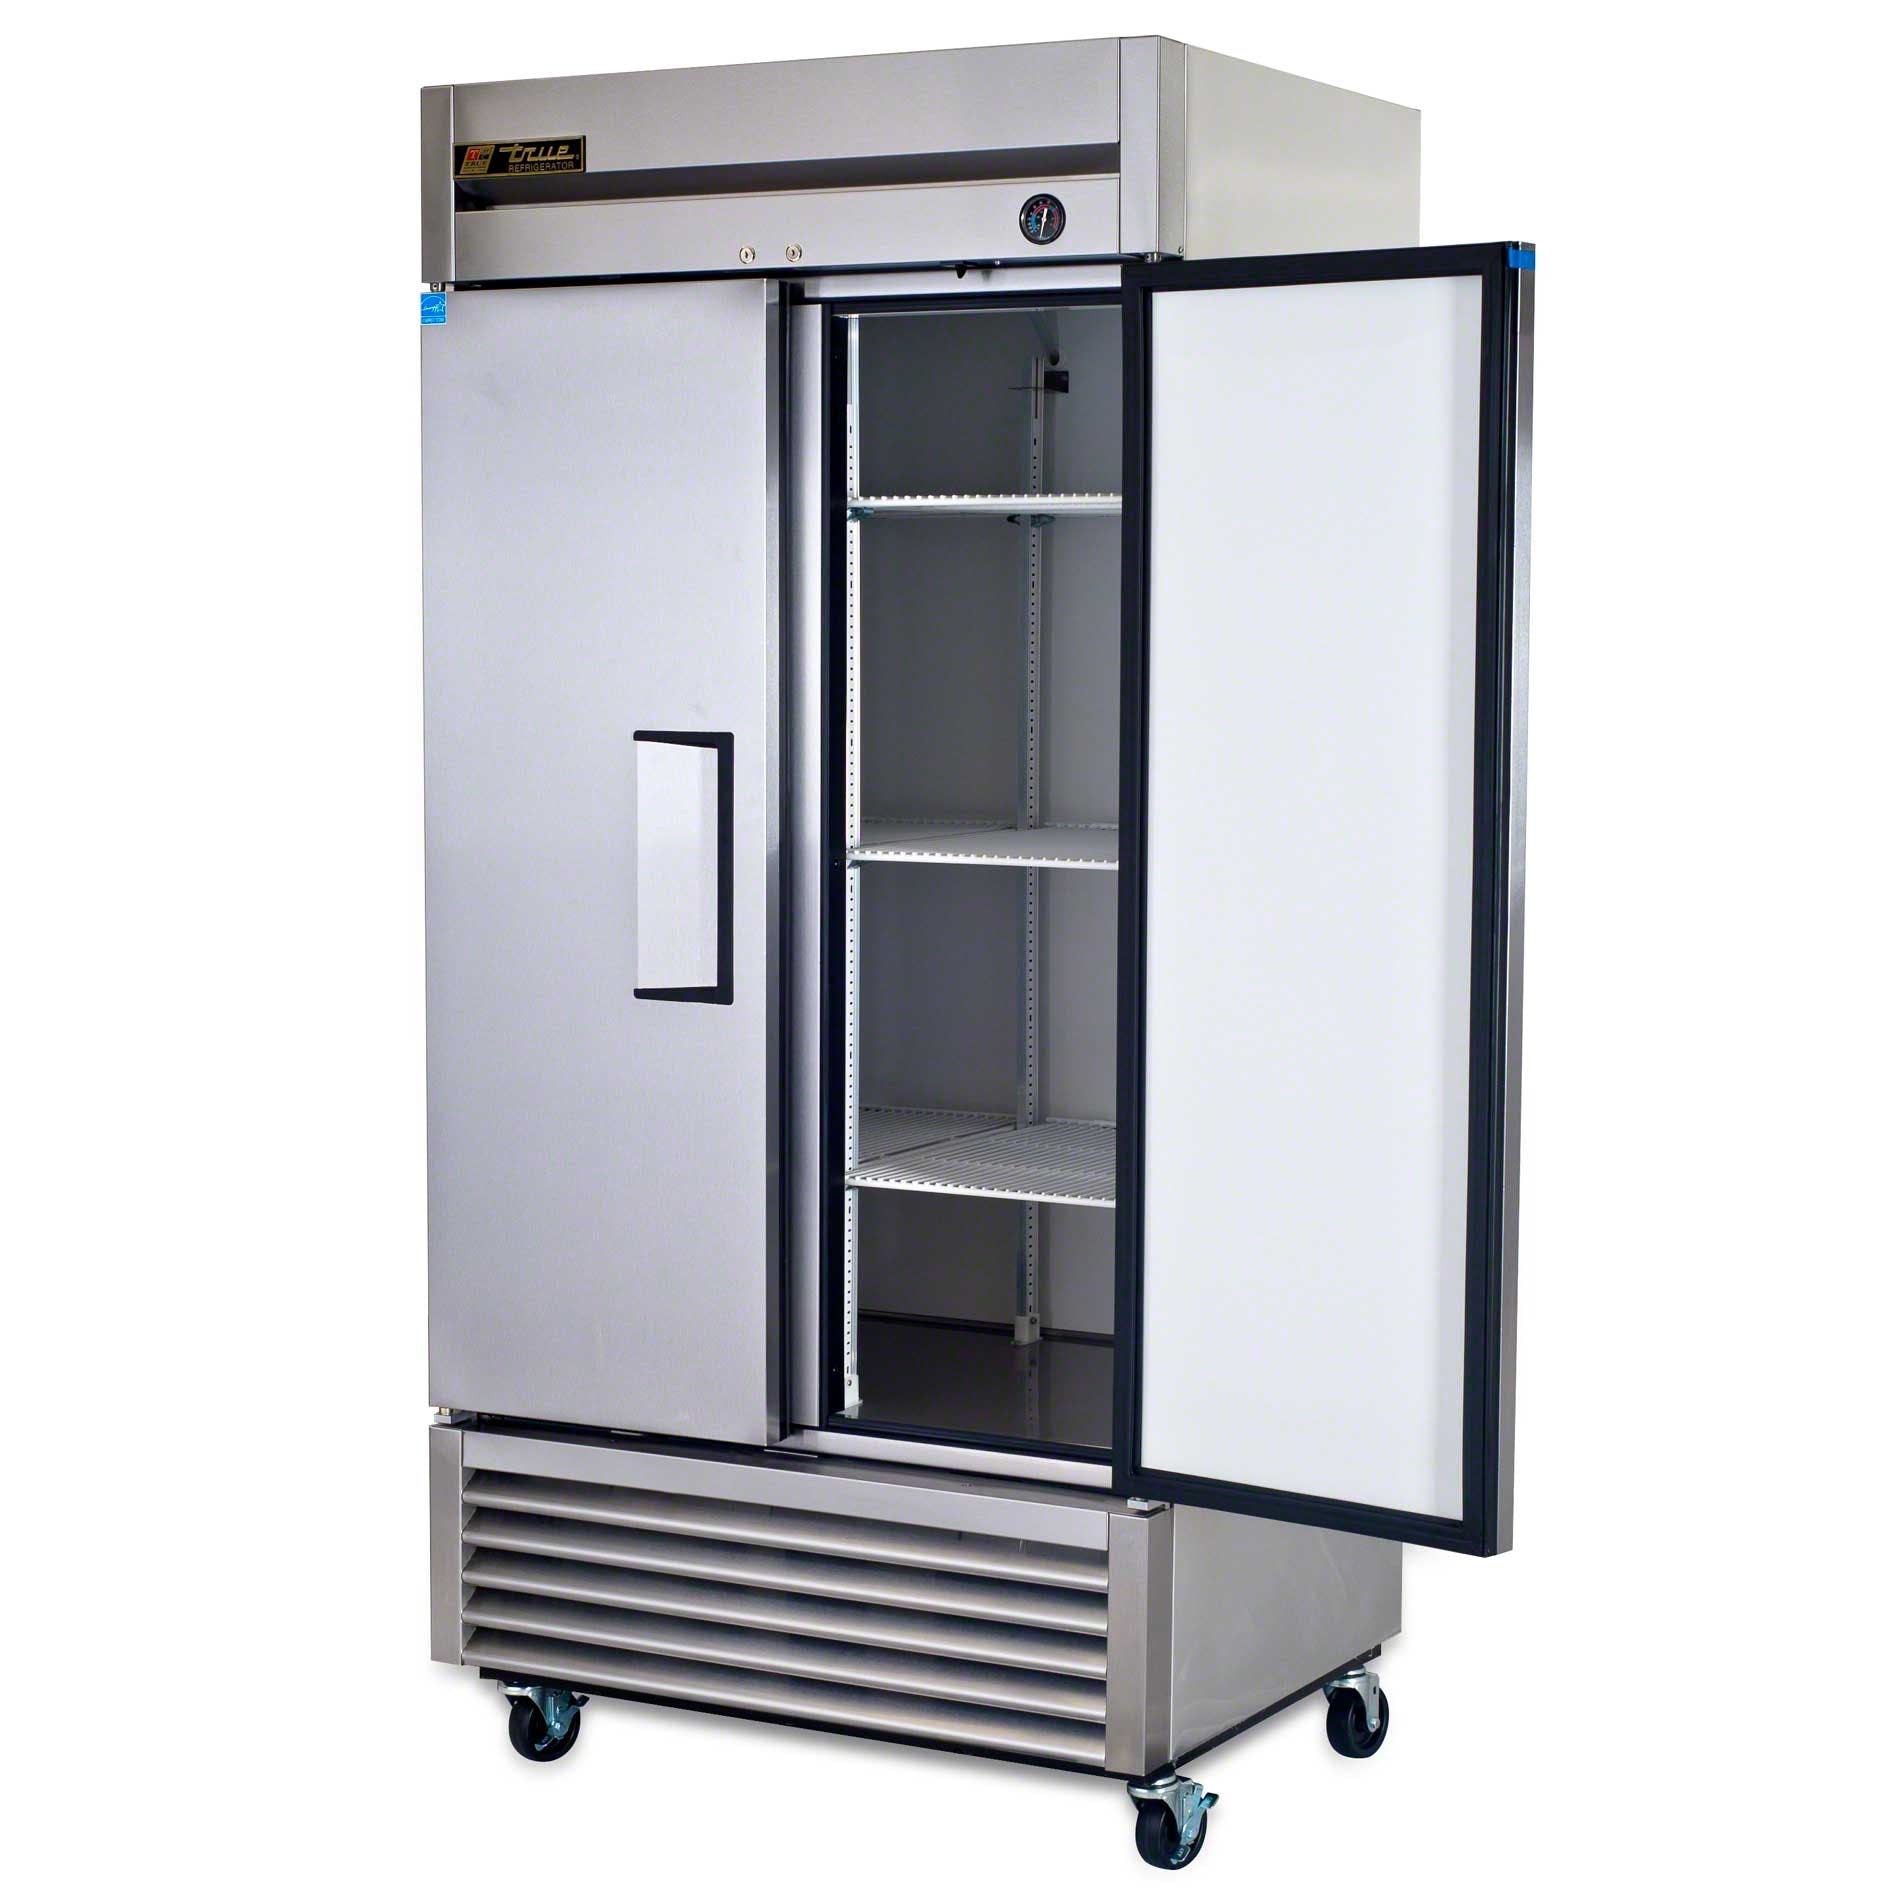 "True ( T-35 ) - 40"" Solid Door Reach-In Refrigerator - sold by Food Service Warehouse"